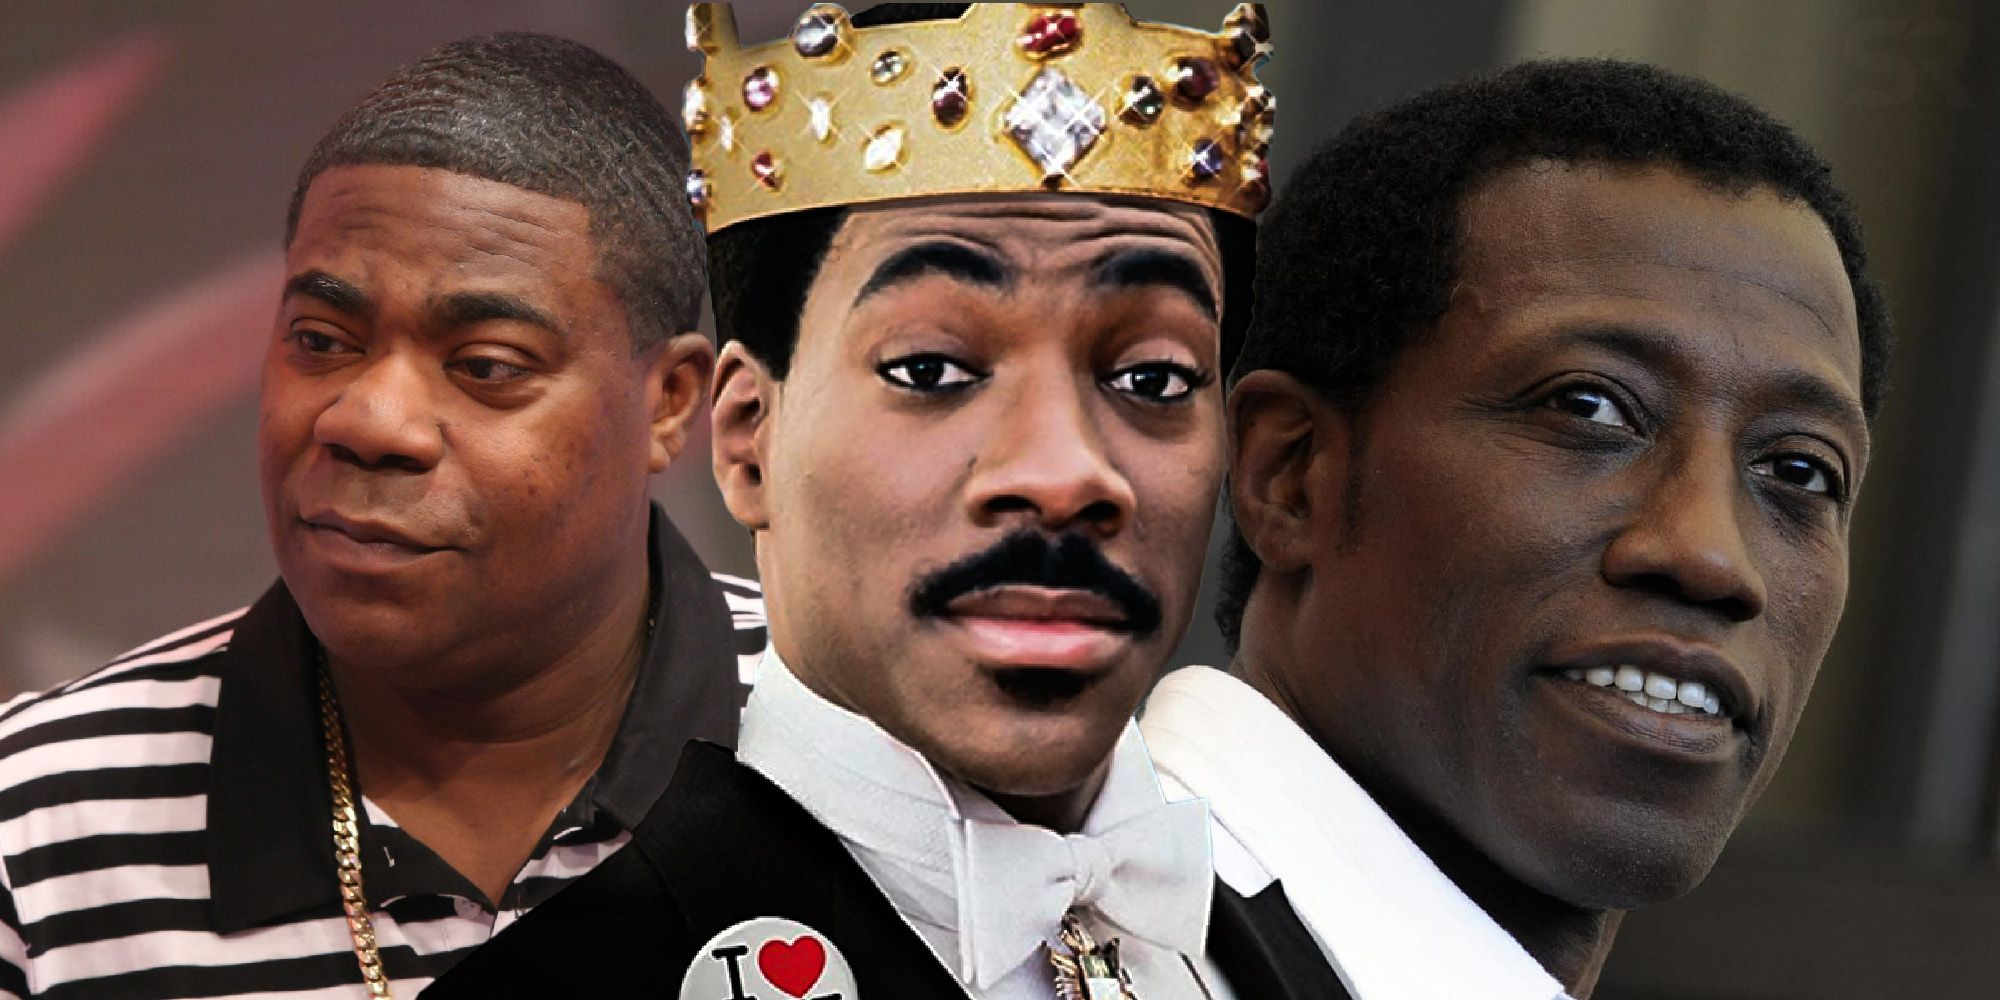 Coming 2 America: Every New Actor Cast In The Sequel